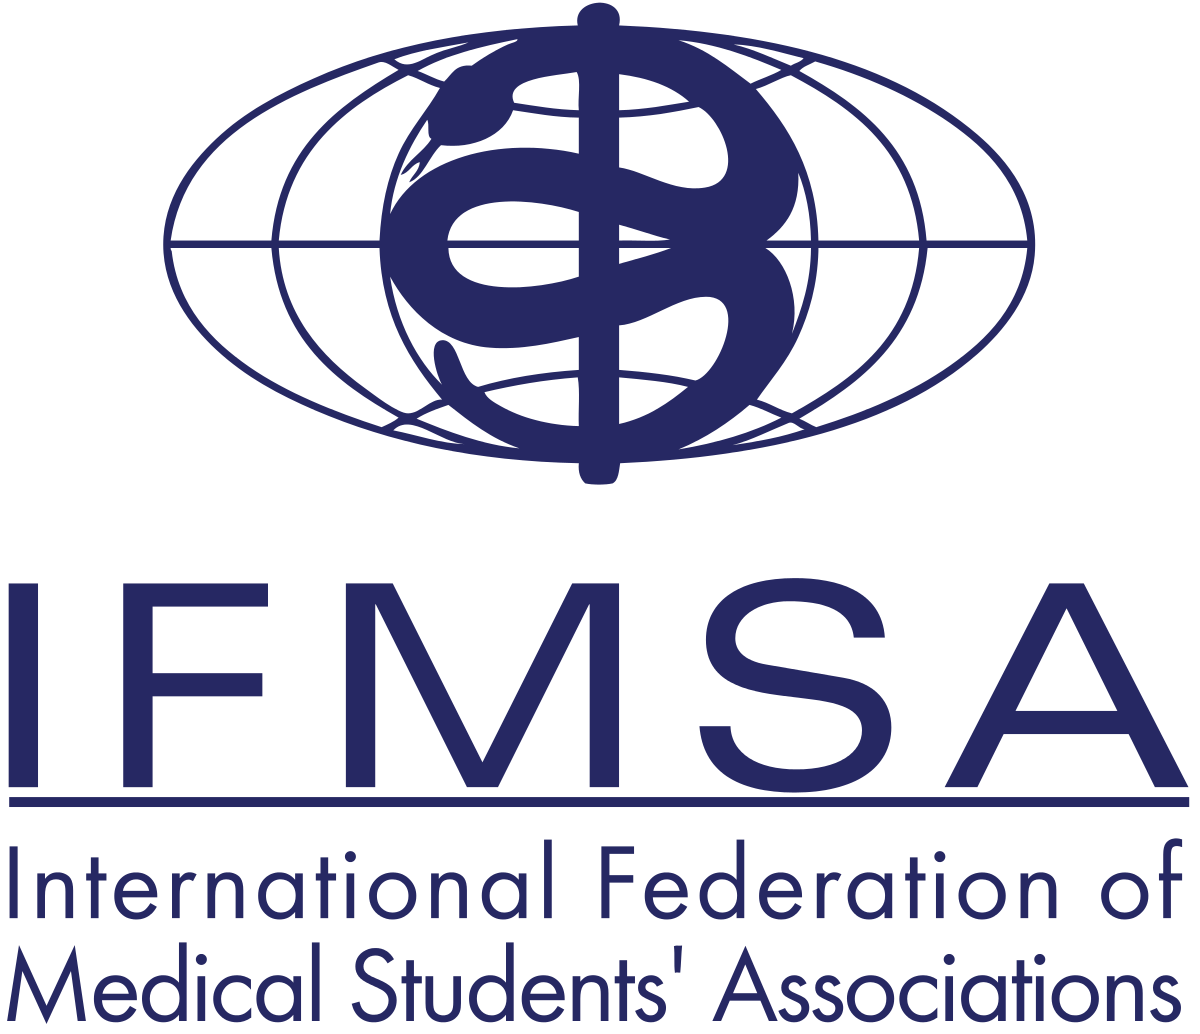 Future vector medical student. International federation of students